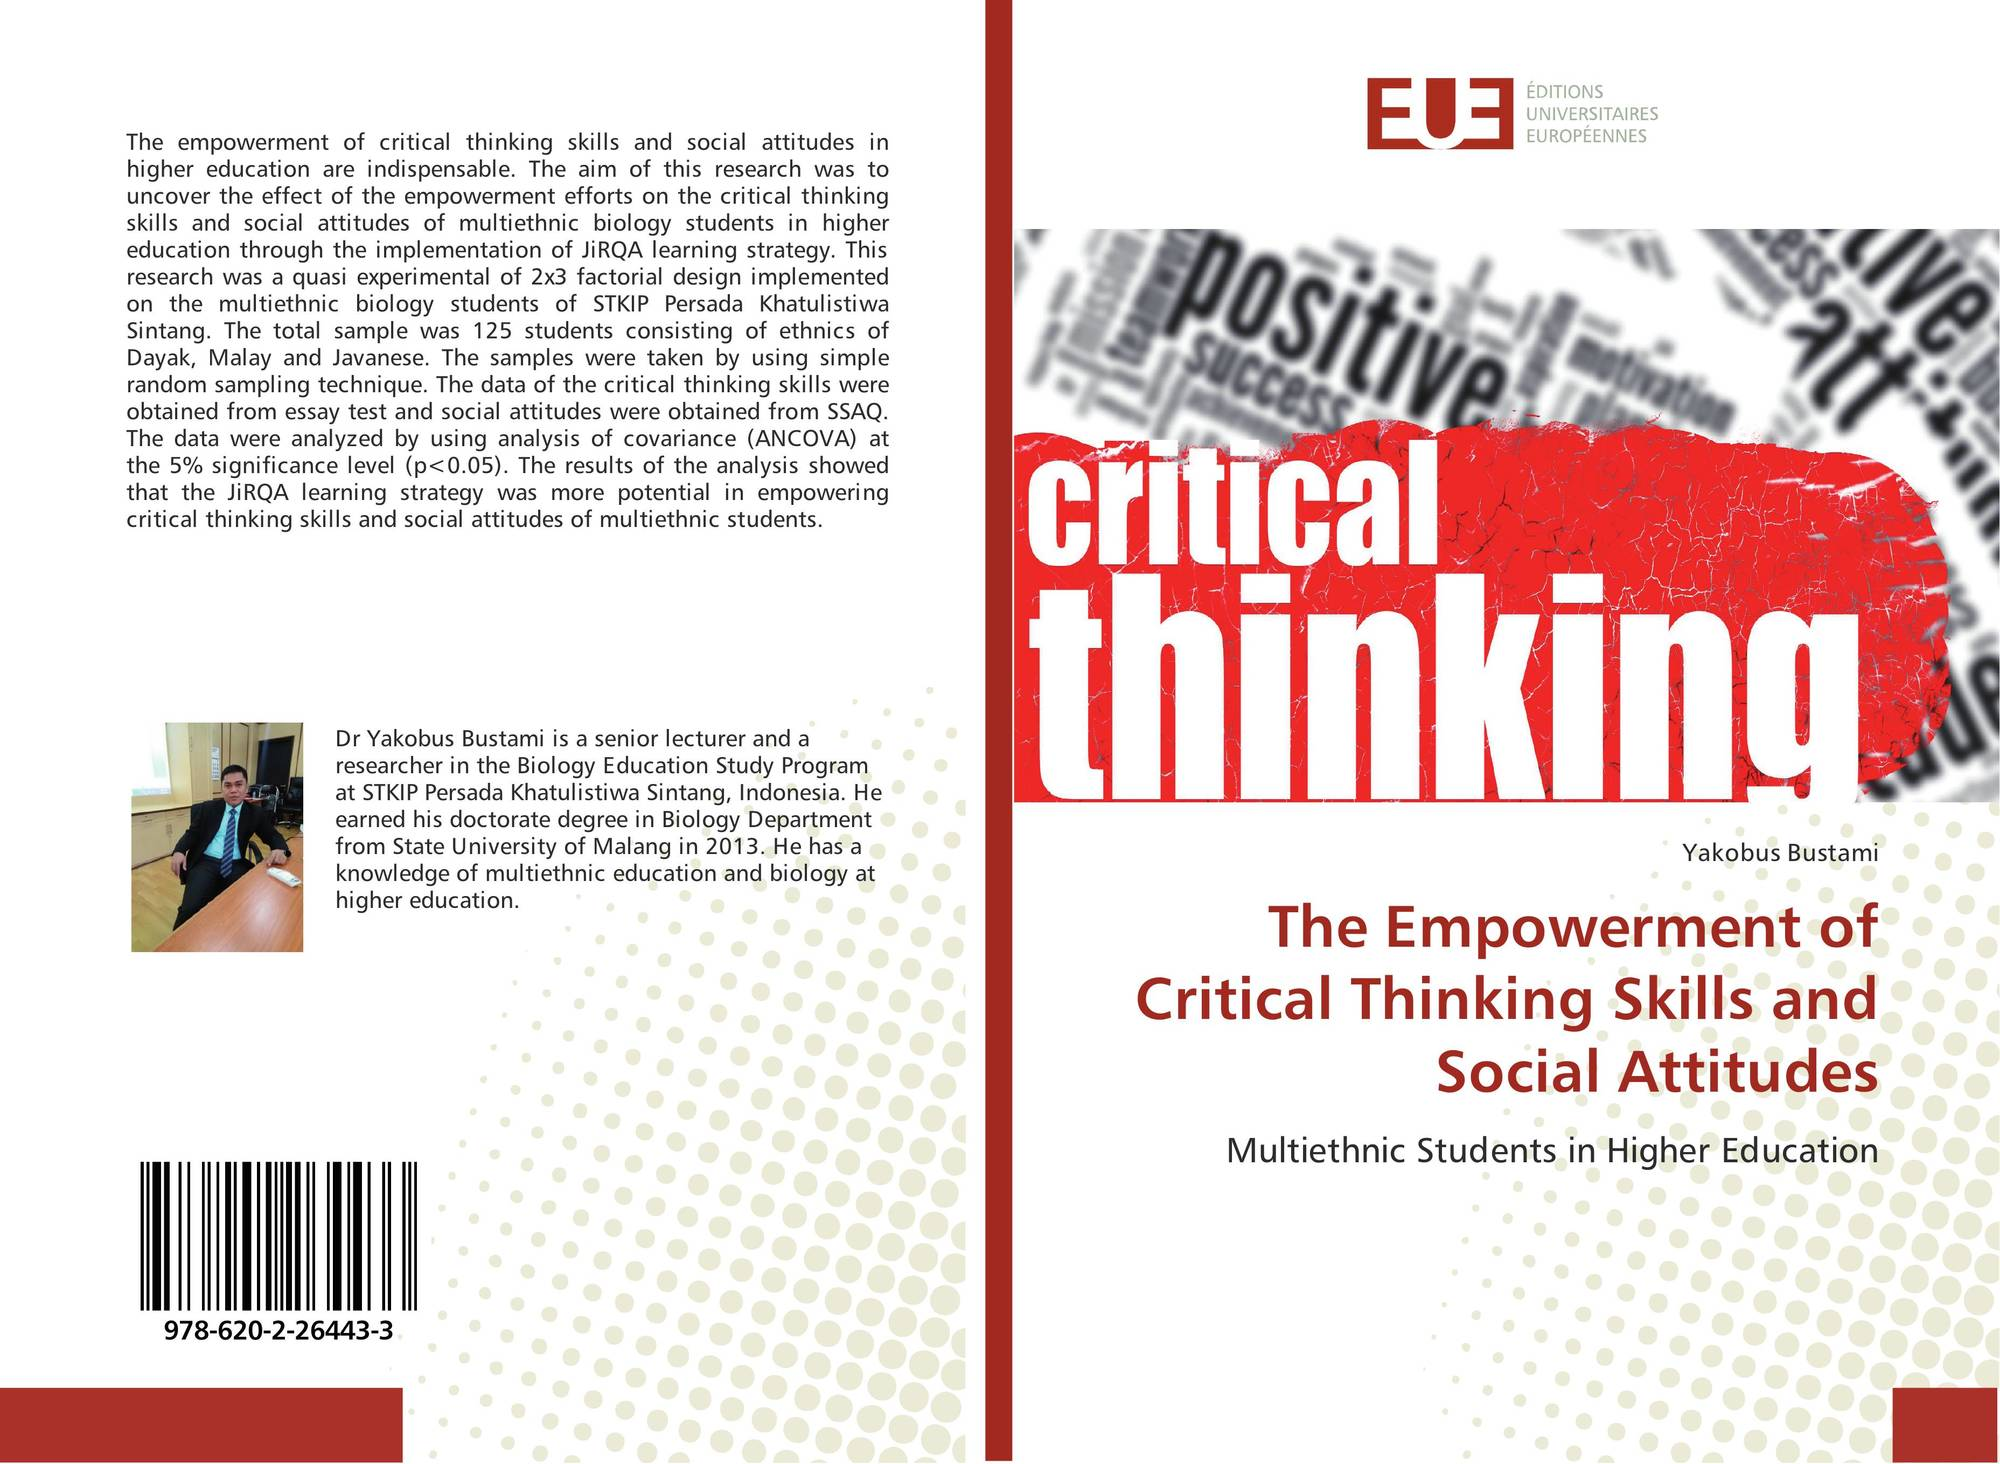 critical thinking and society Critical thinking is reflective reasoning about beliefs and actions it is a way of deciding whether a claim is always true, sometimes true, partly true, or false the three hindrances of the critical thinking process are becoming aware that assumptions exist, making assumptions explicit, and assessing their accuracy.